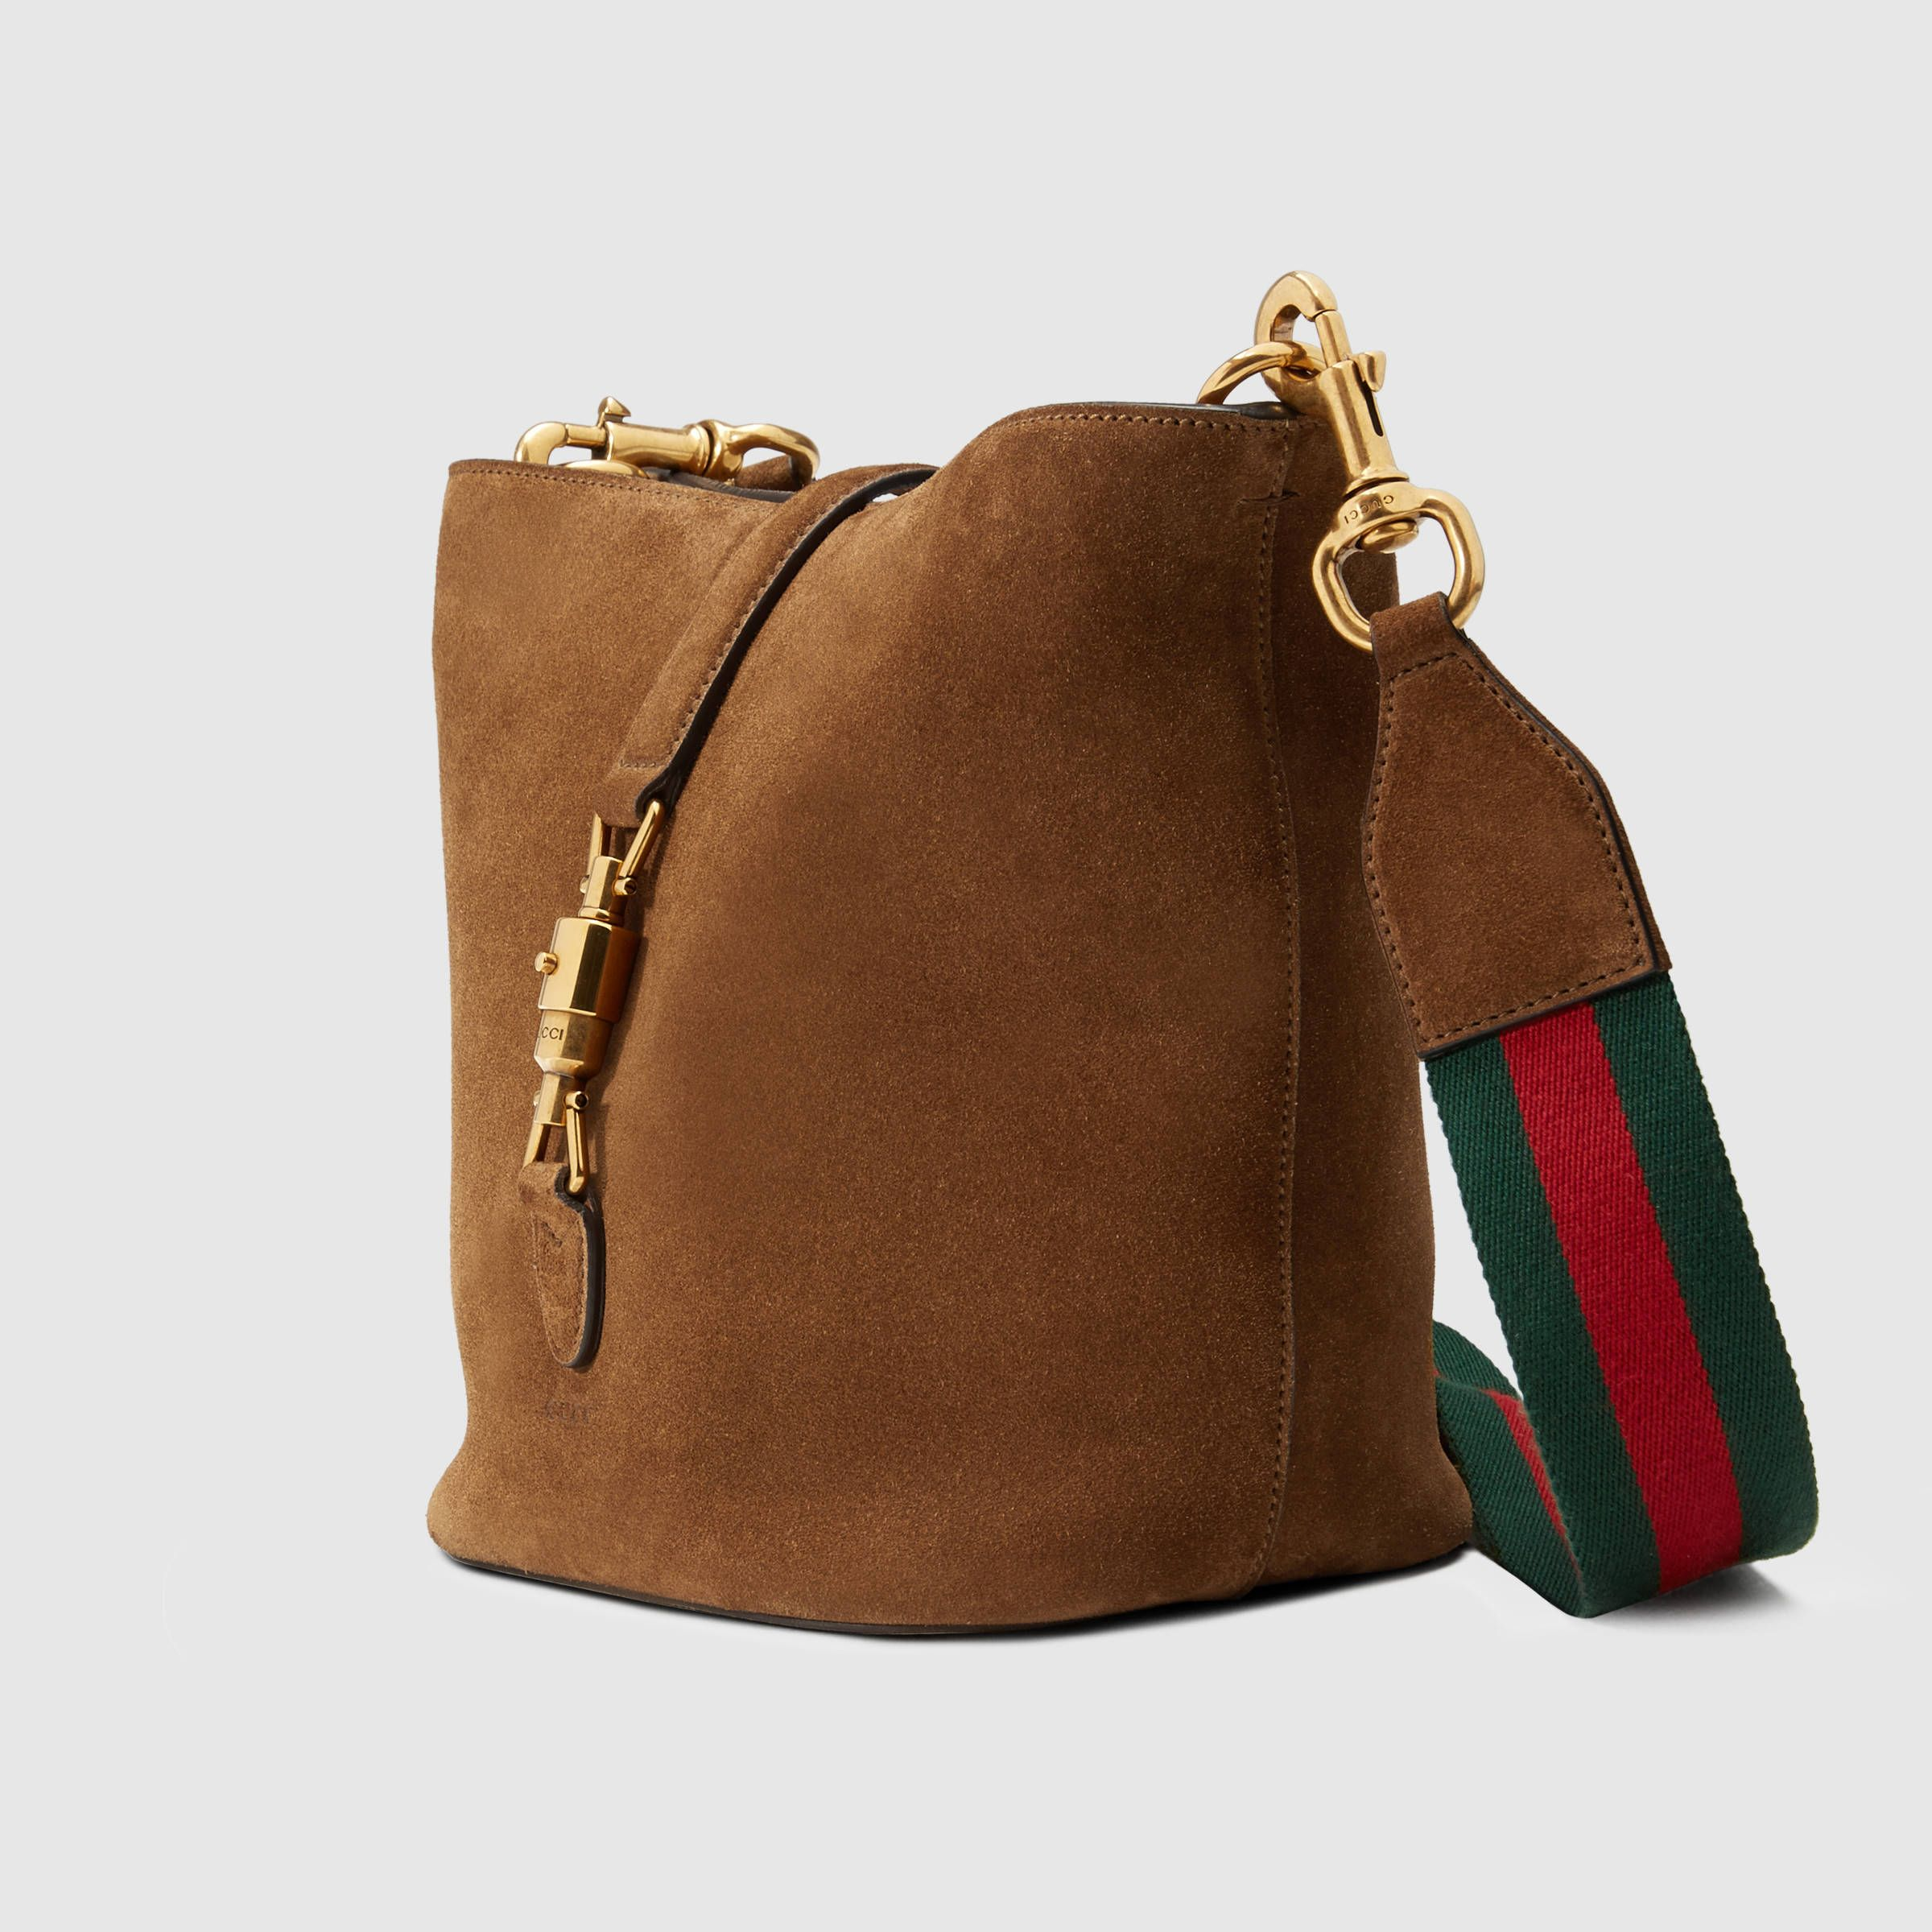 a63c513640e8 Gucci Women - Jackie Soft suede bucket bag - 380579CEMIT2676